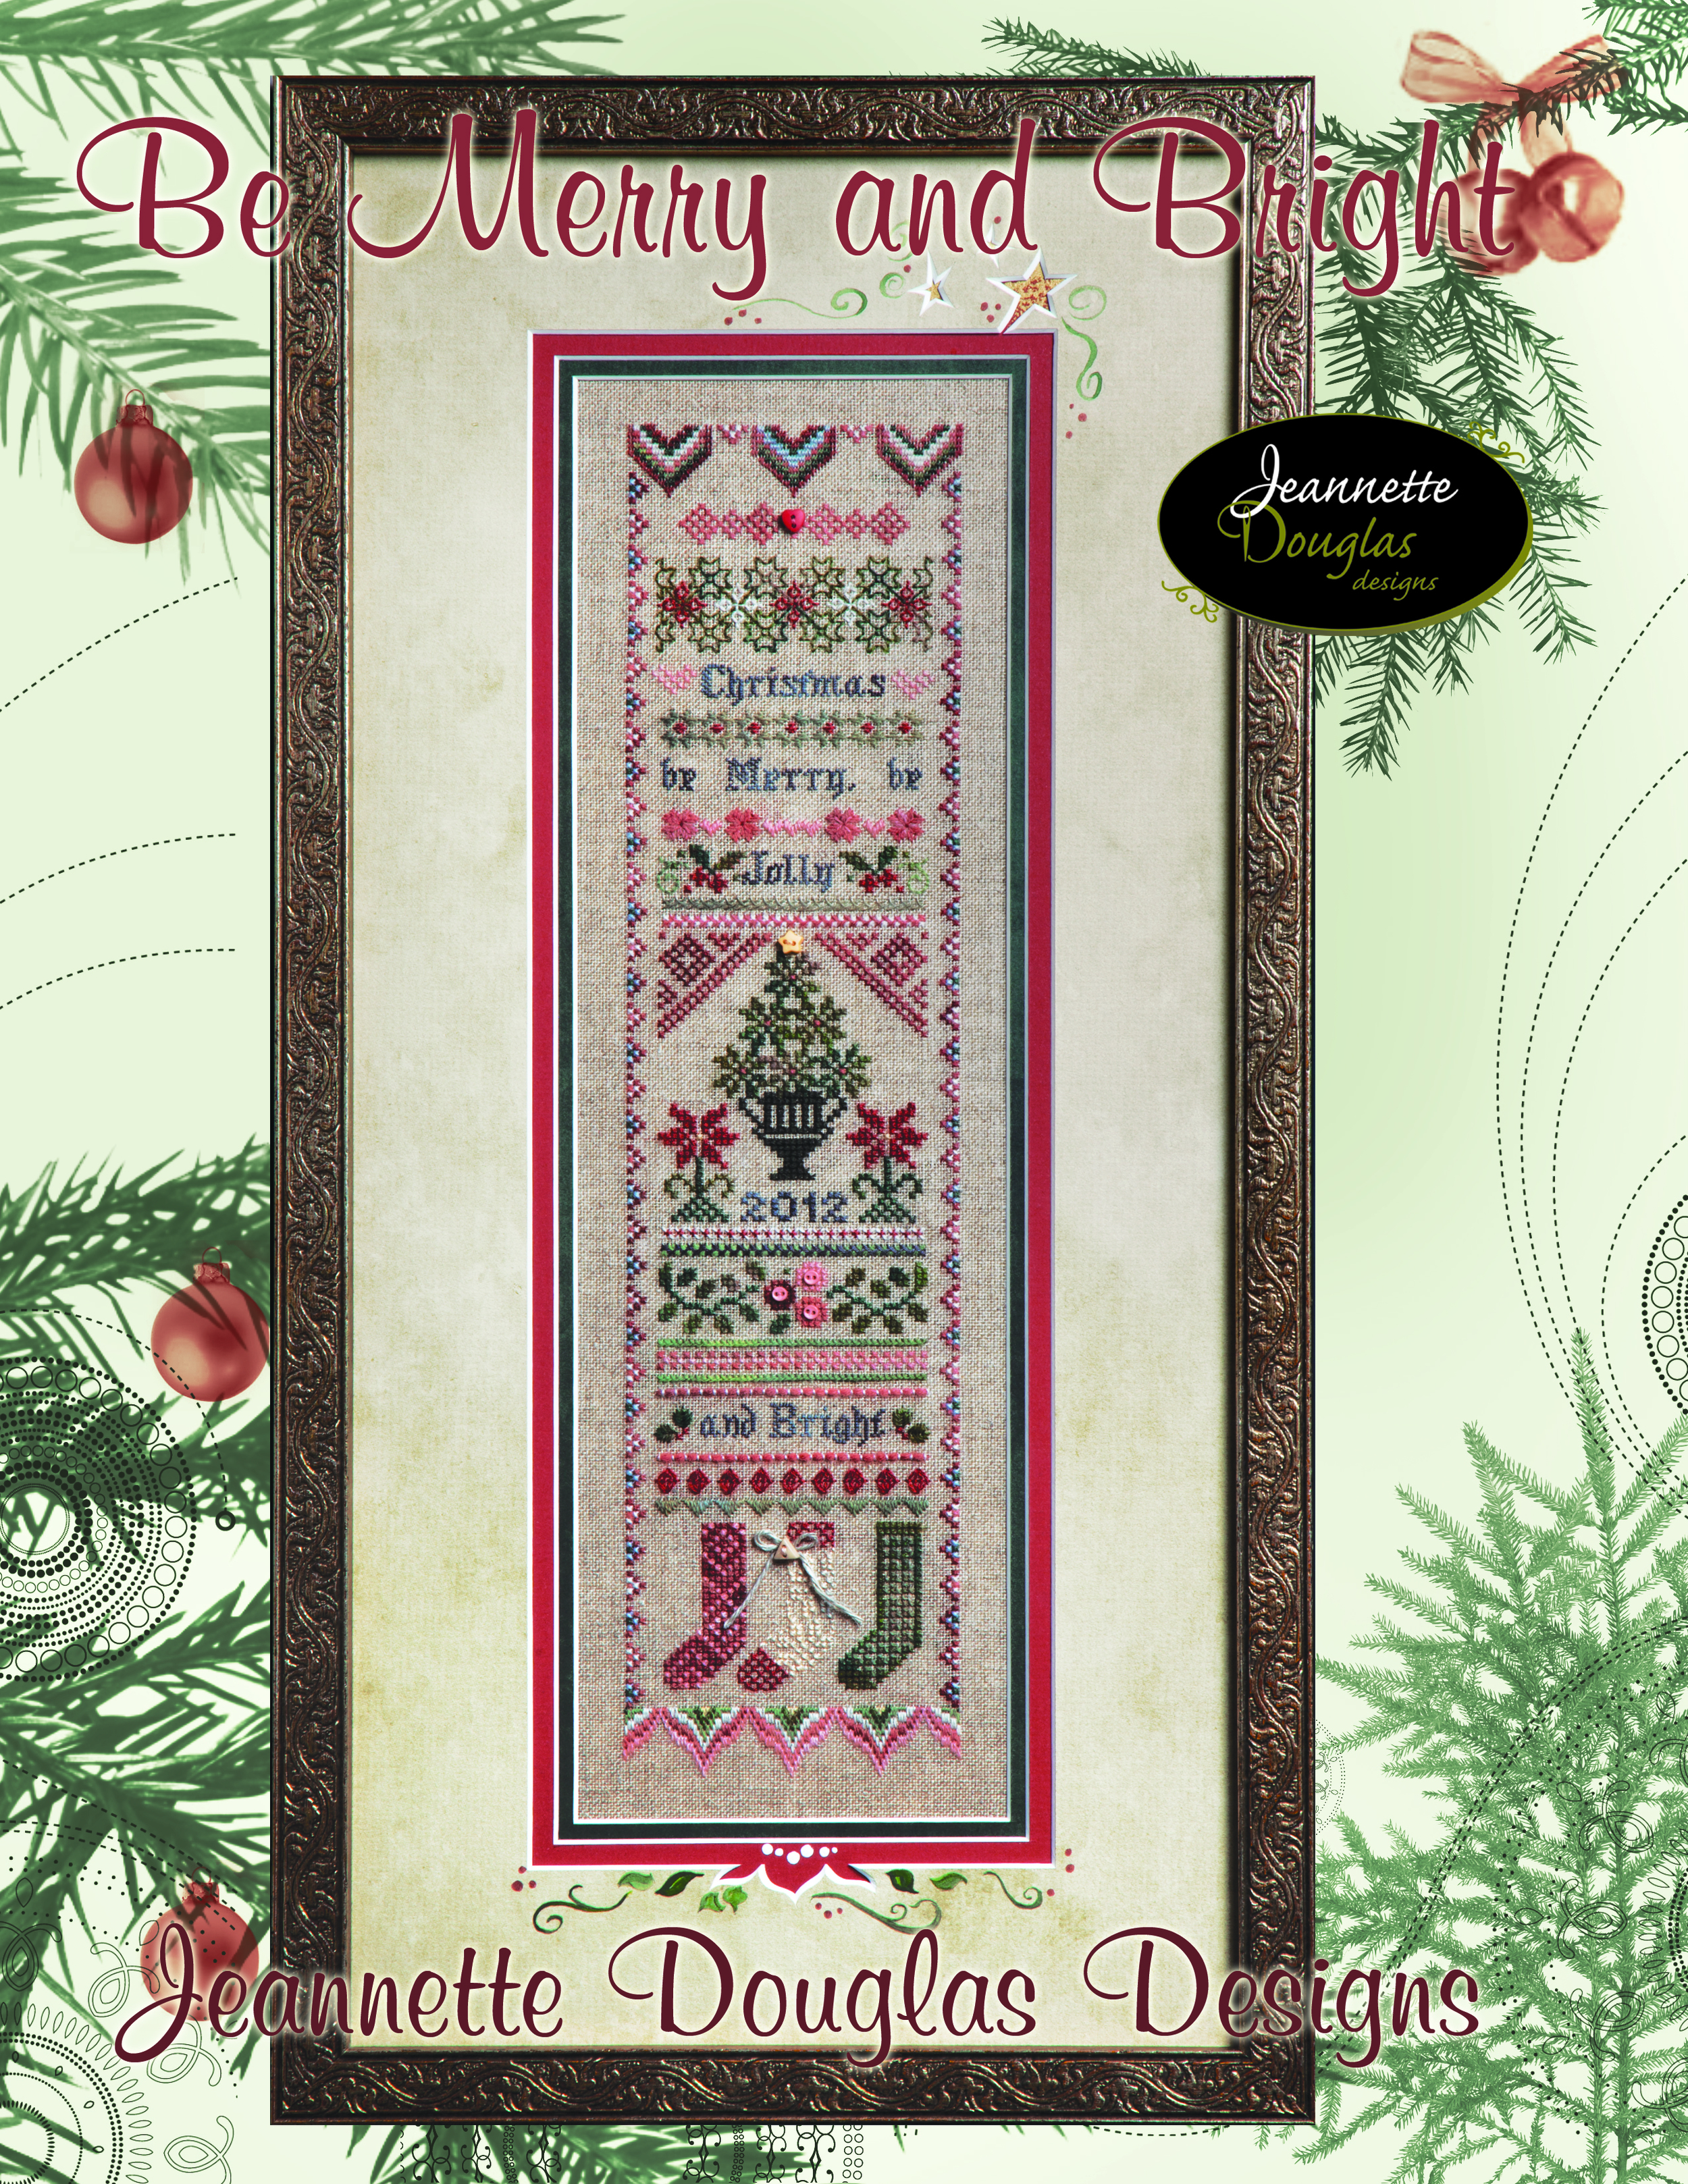 Be Merry and Bright Sampler